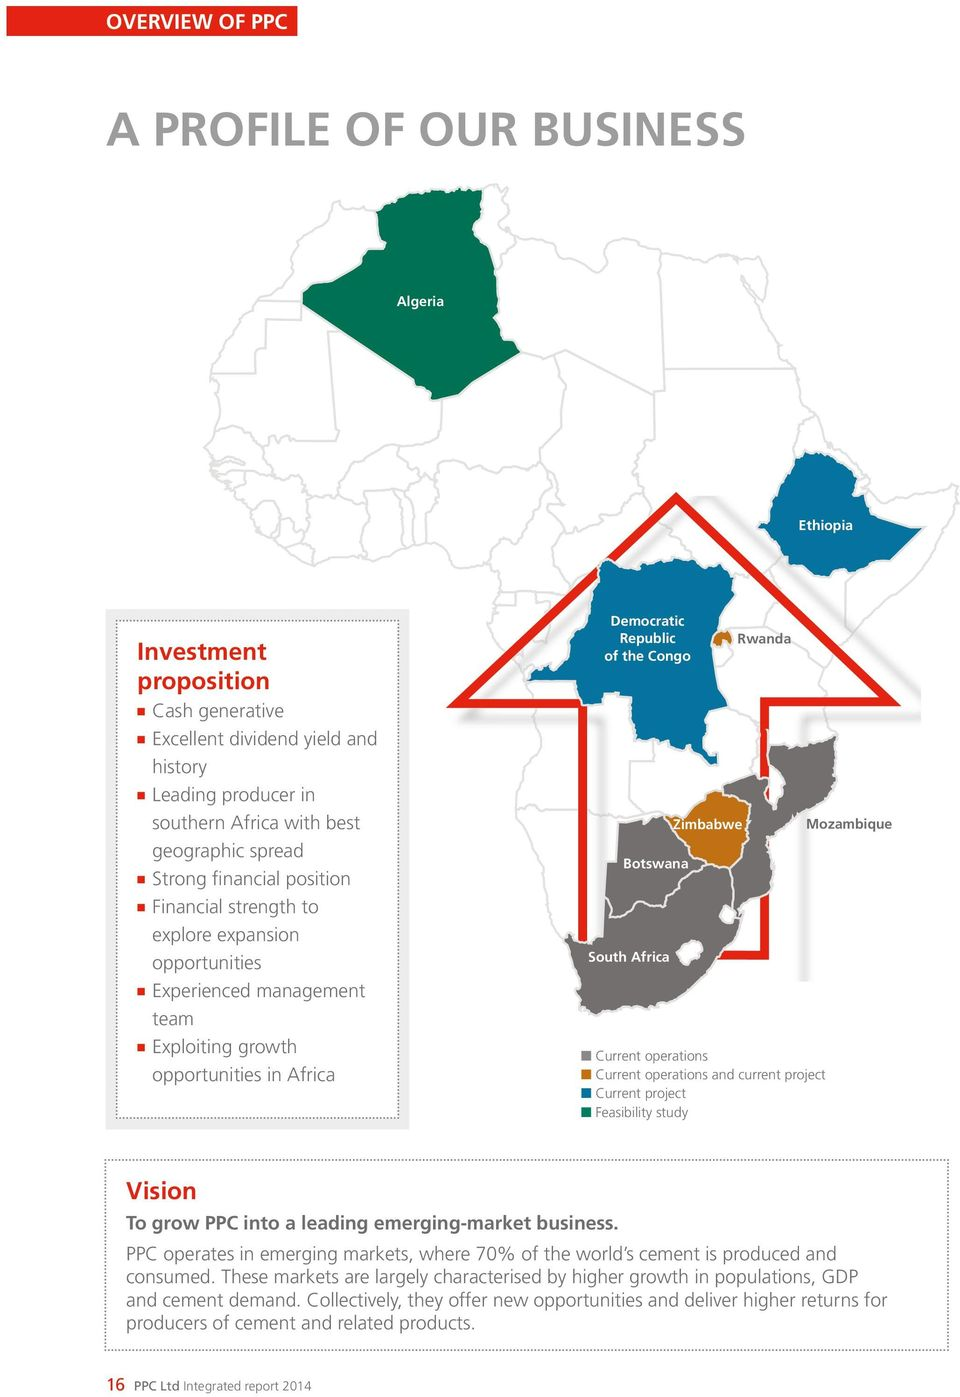 Africa Zimbabwe Rwanda Current operations Current operations and current project Current project Feasibility study Mozambique Vision To grow PPC into a leading emerging-market business.